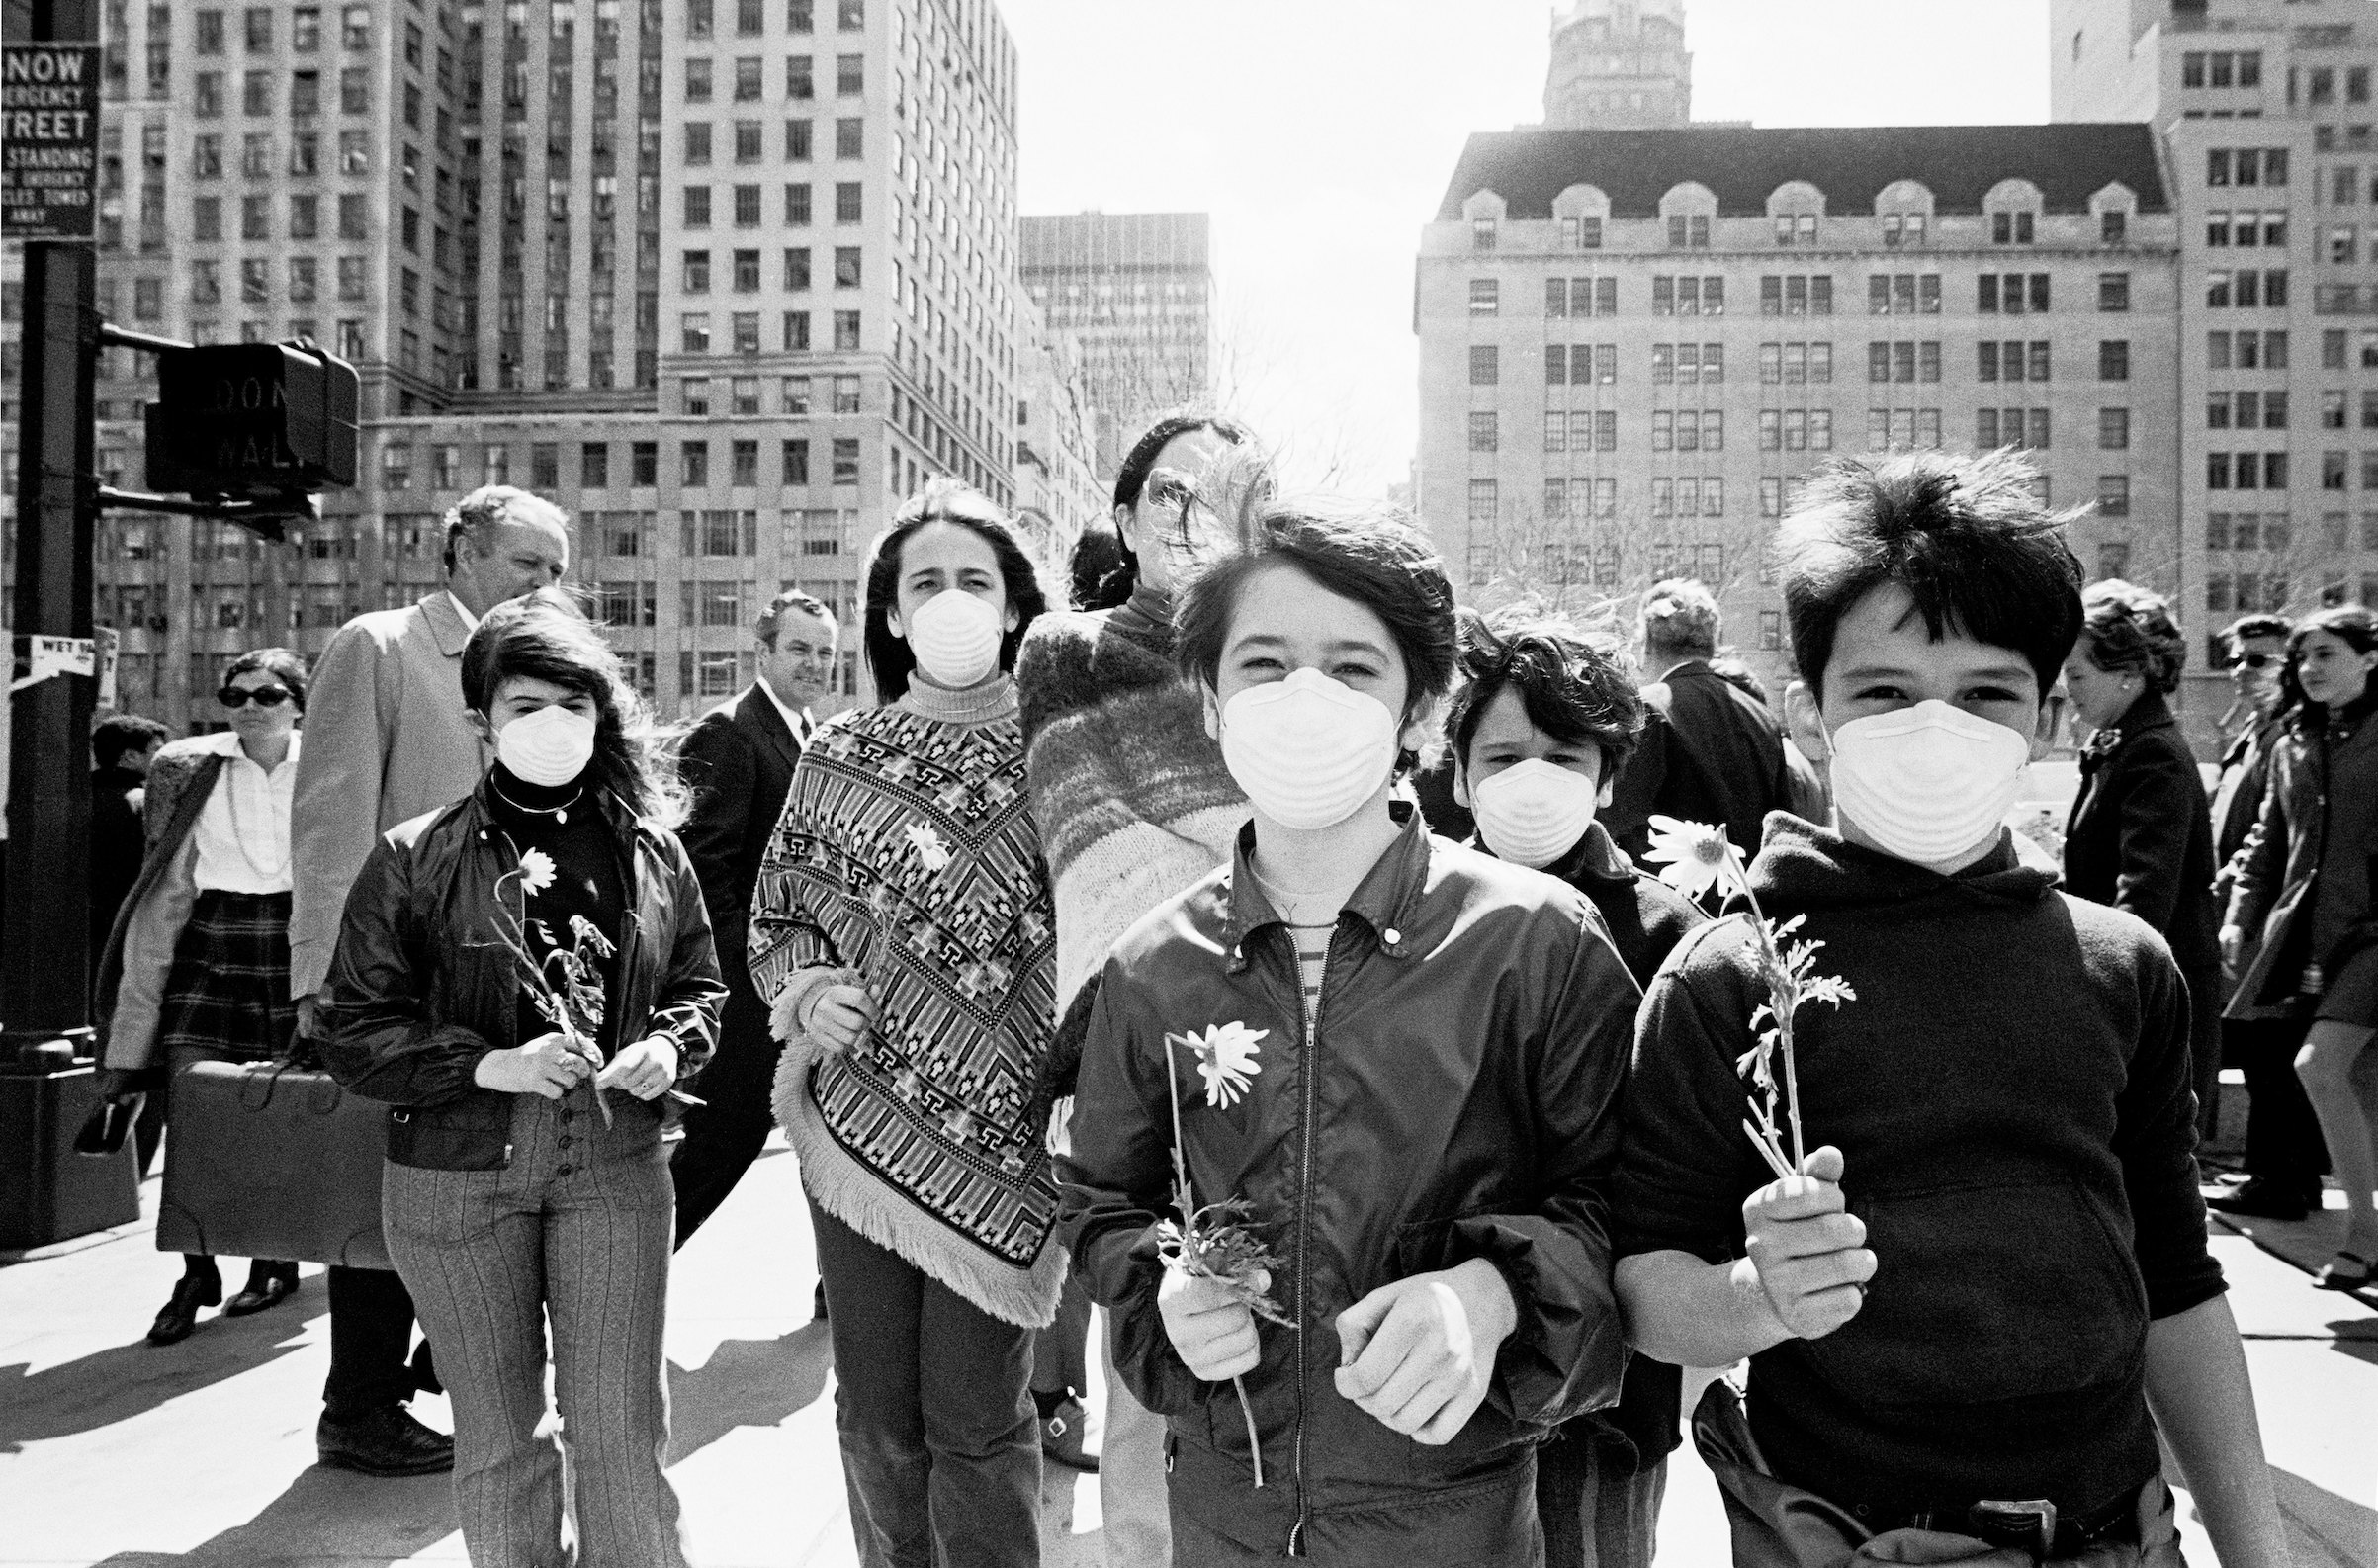 Demonstrators in New York, N.Y., in 1970. Air pollution was a major issue among many who marked the first Earth Day on April 22, 1970.